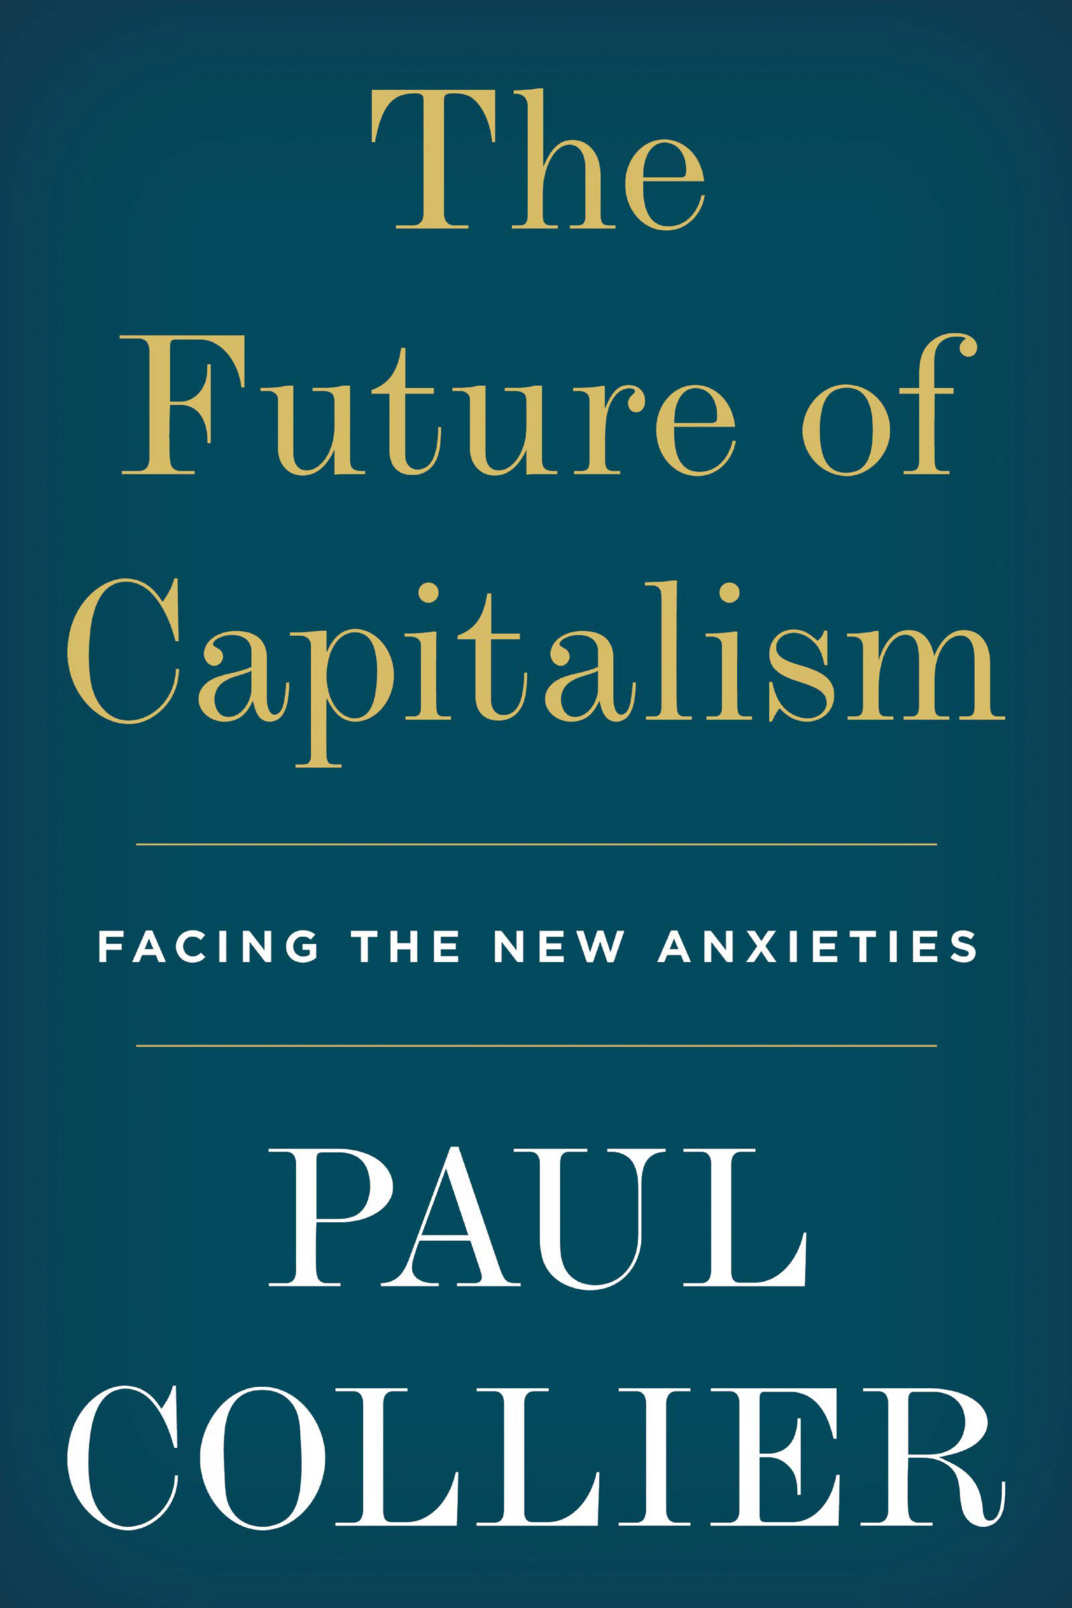 The Future of Capitalism: Facing the New Anxieties, by Paul Collier (Harper, December 4)